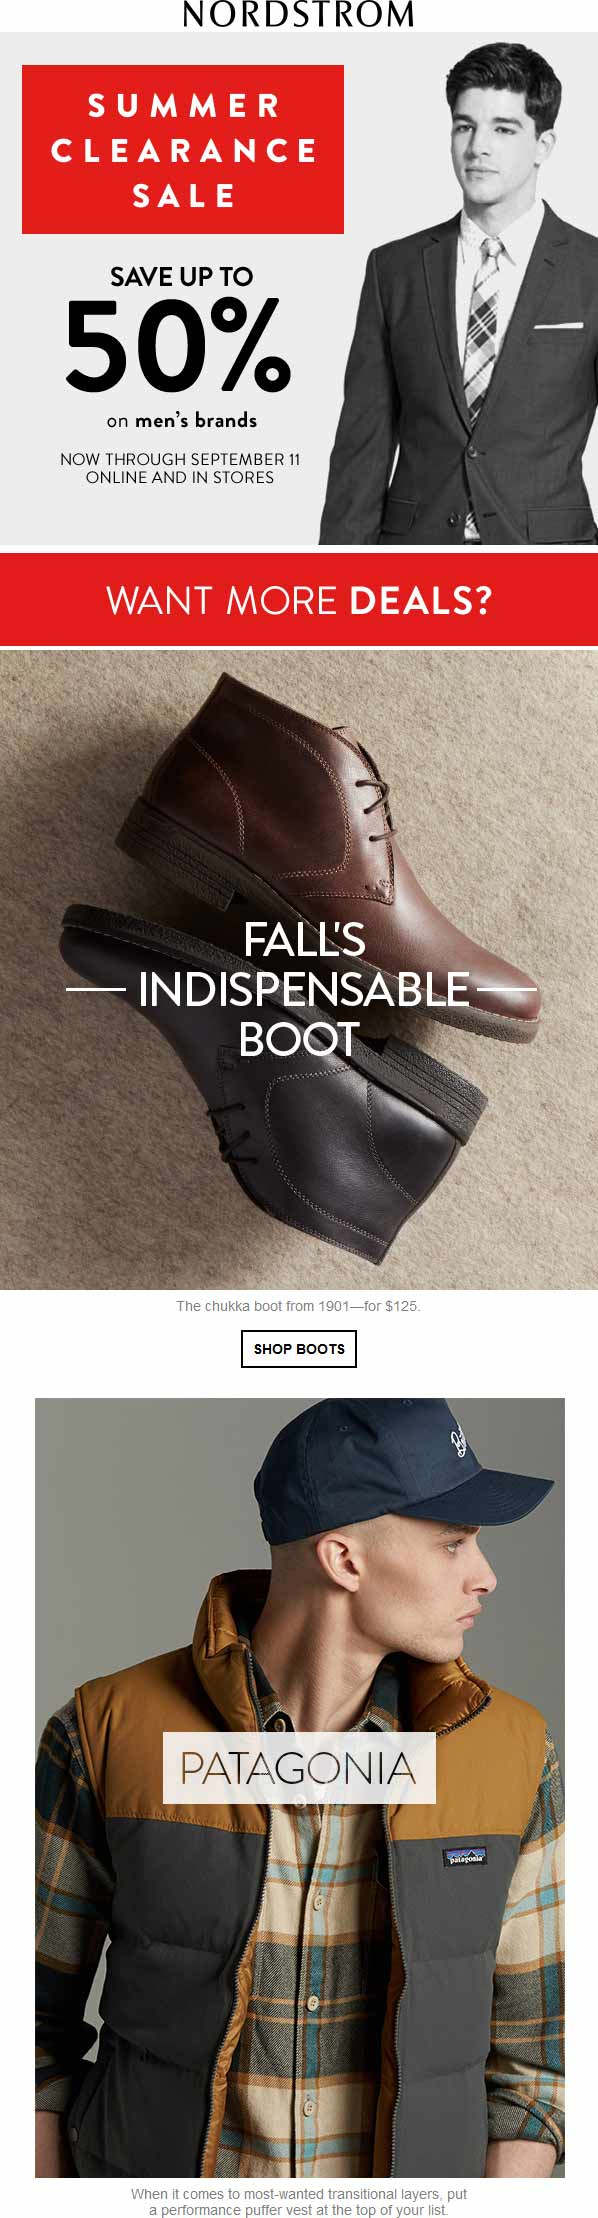 Nordstrom coupons & promo code for [February 2020]